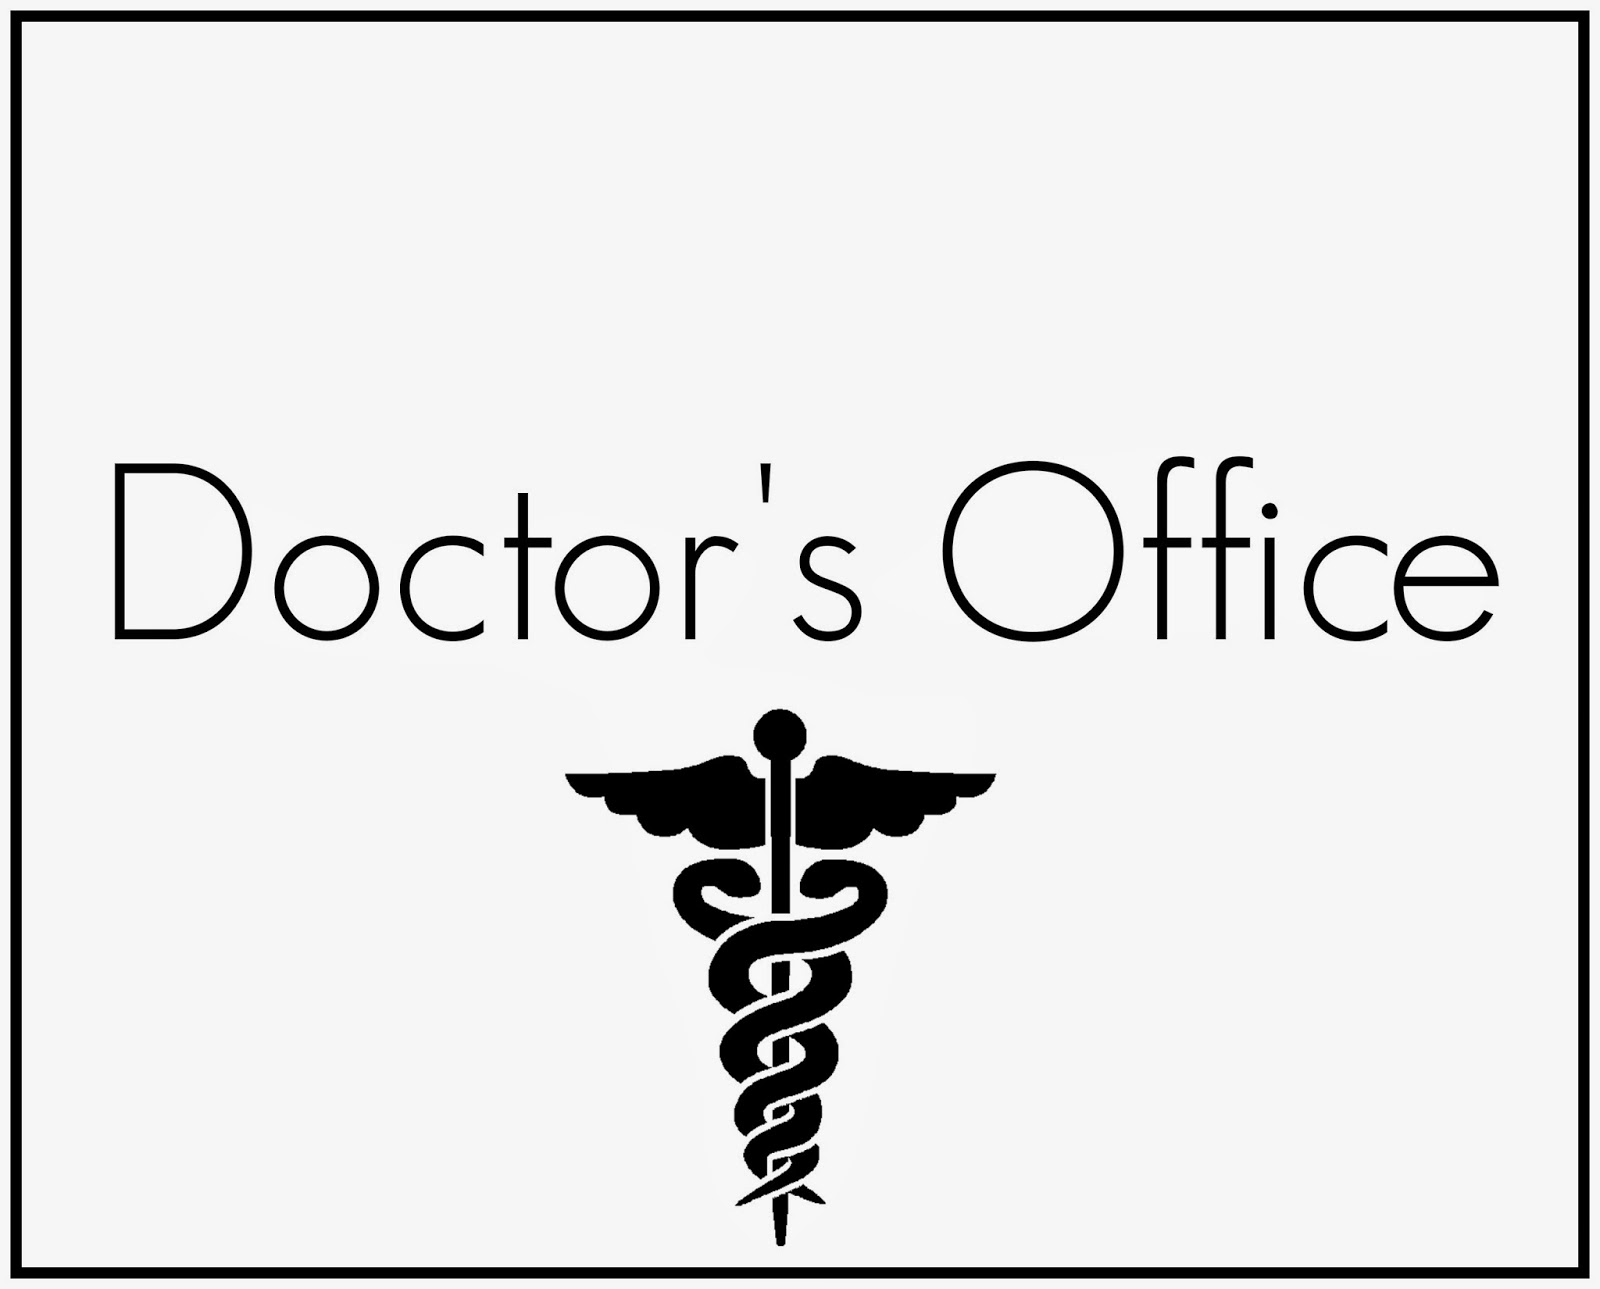 Free pictures of doctors. Doctor clipart doctor office